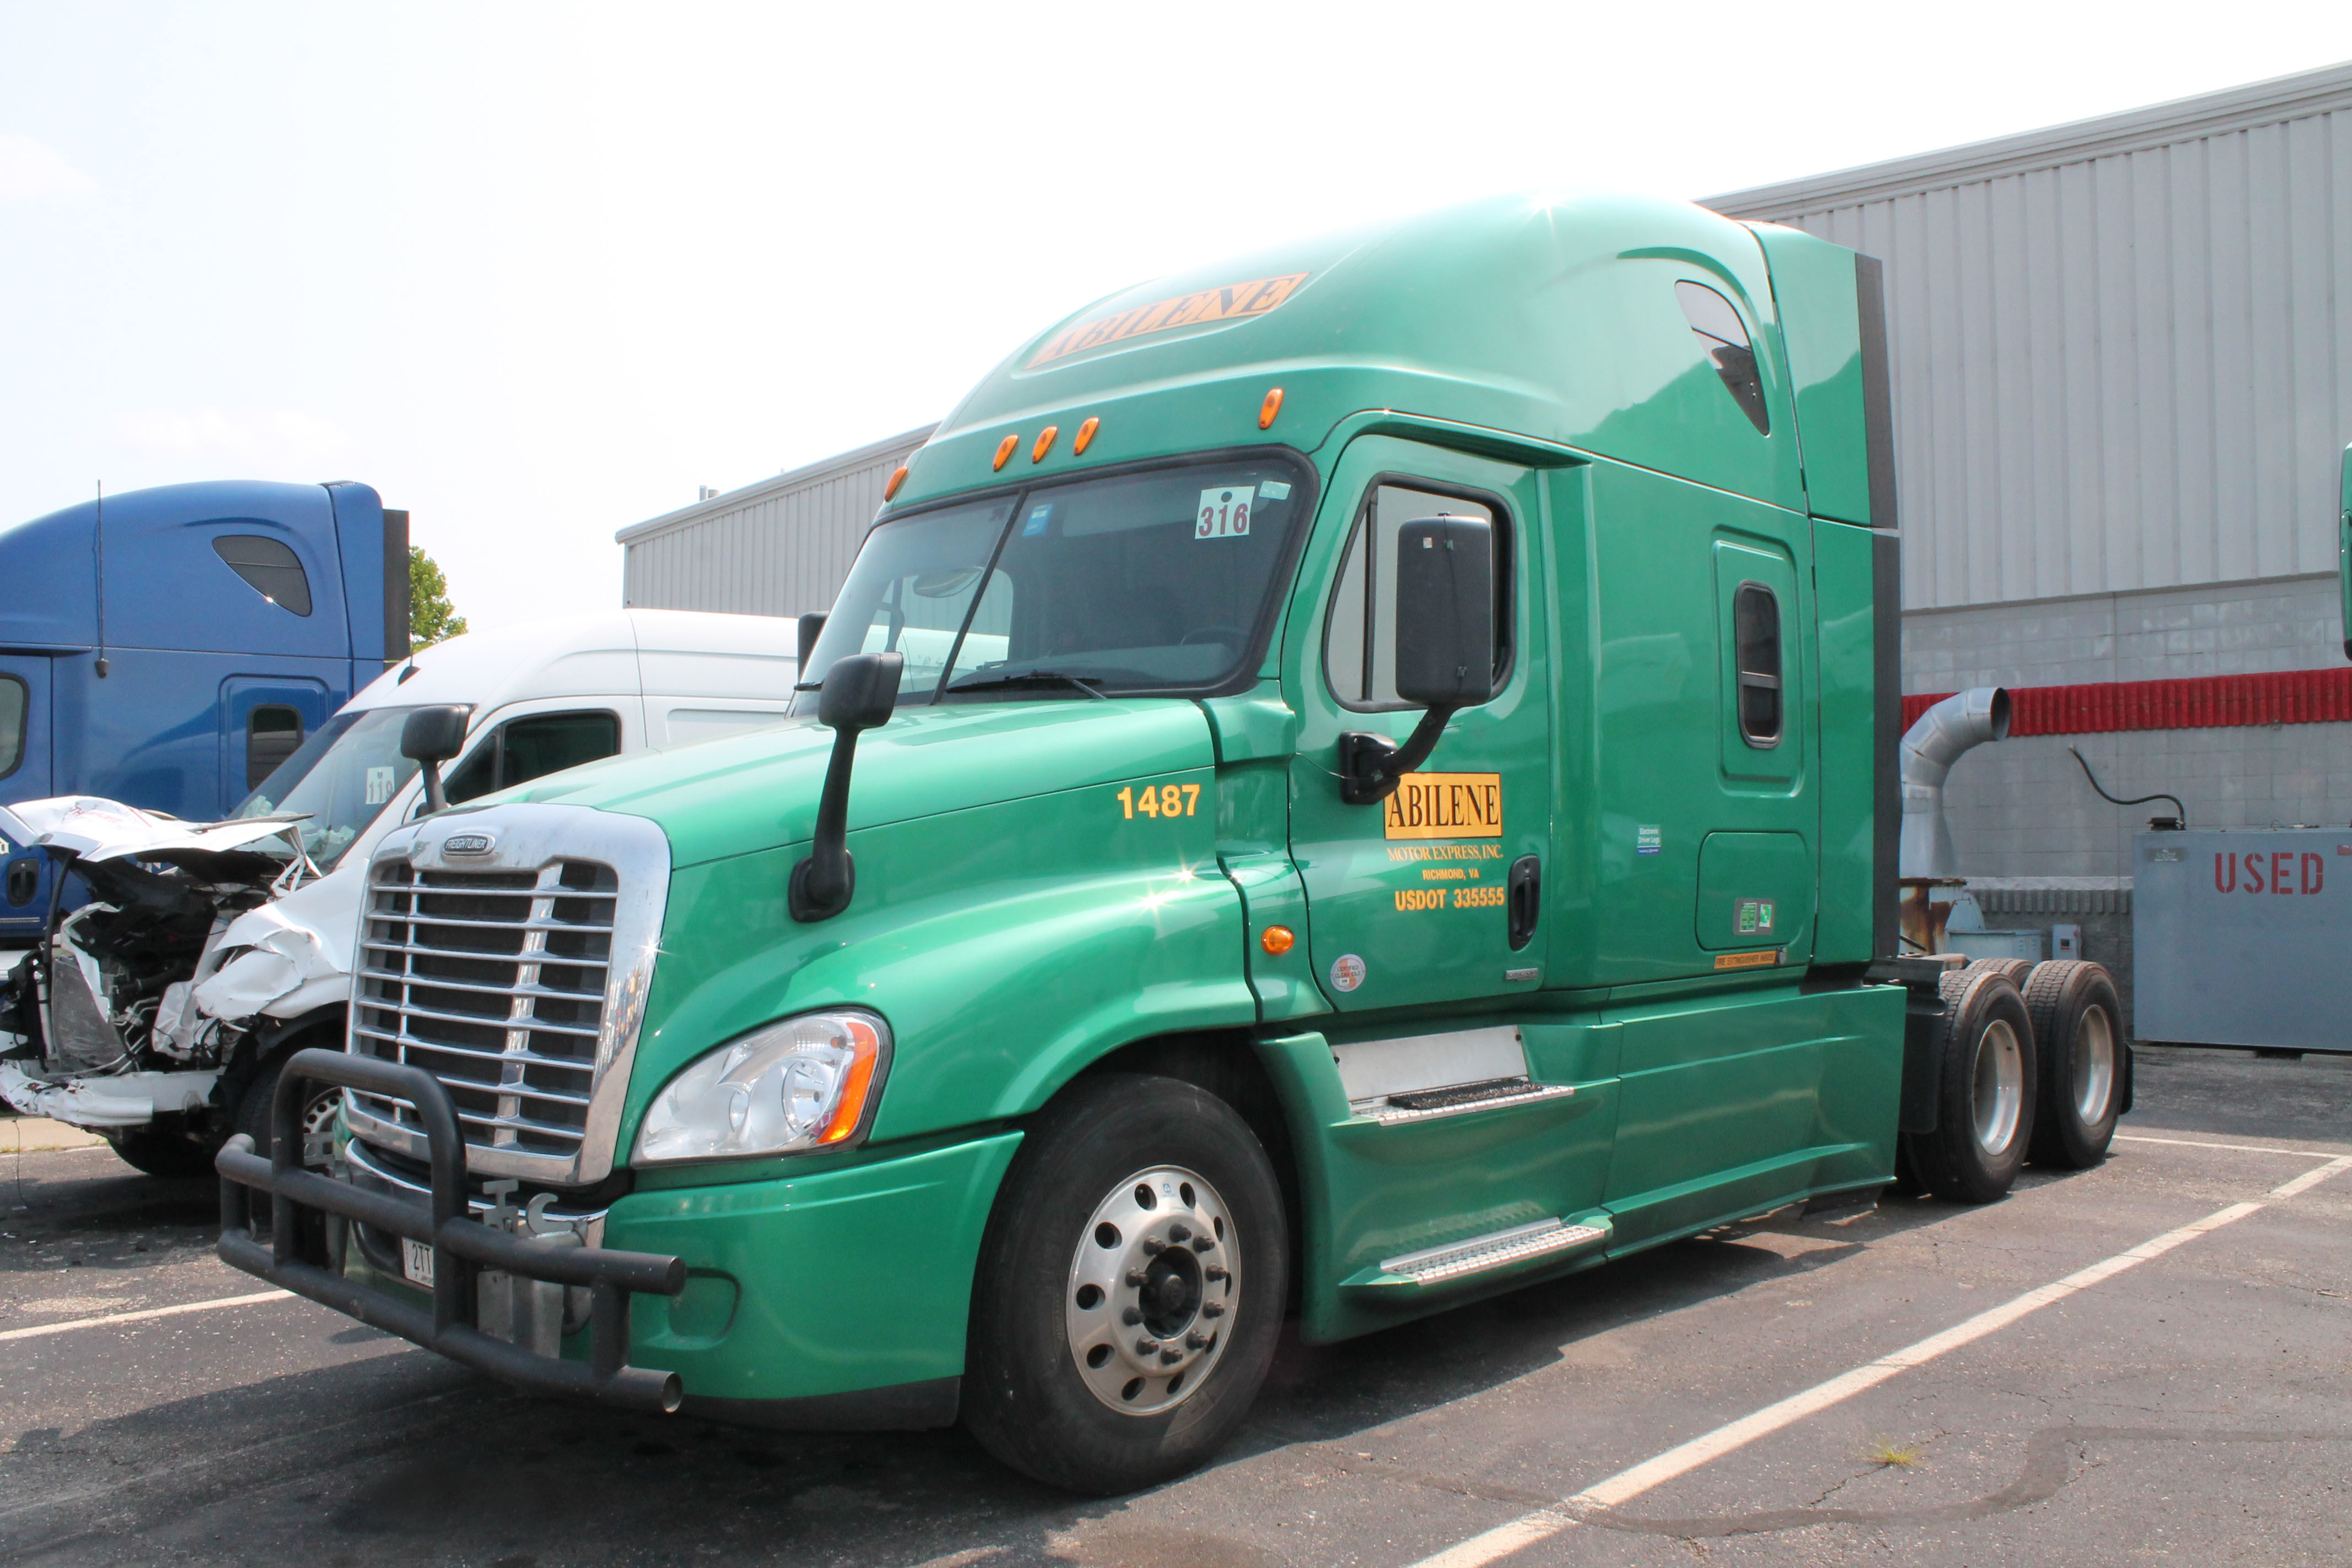 Freightliner Cascadia on I-95 near Beufort, SC in July, 2015